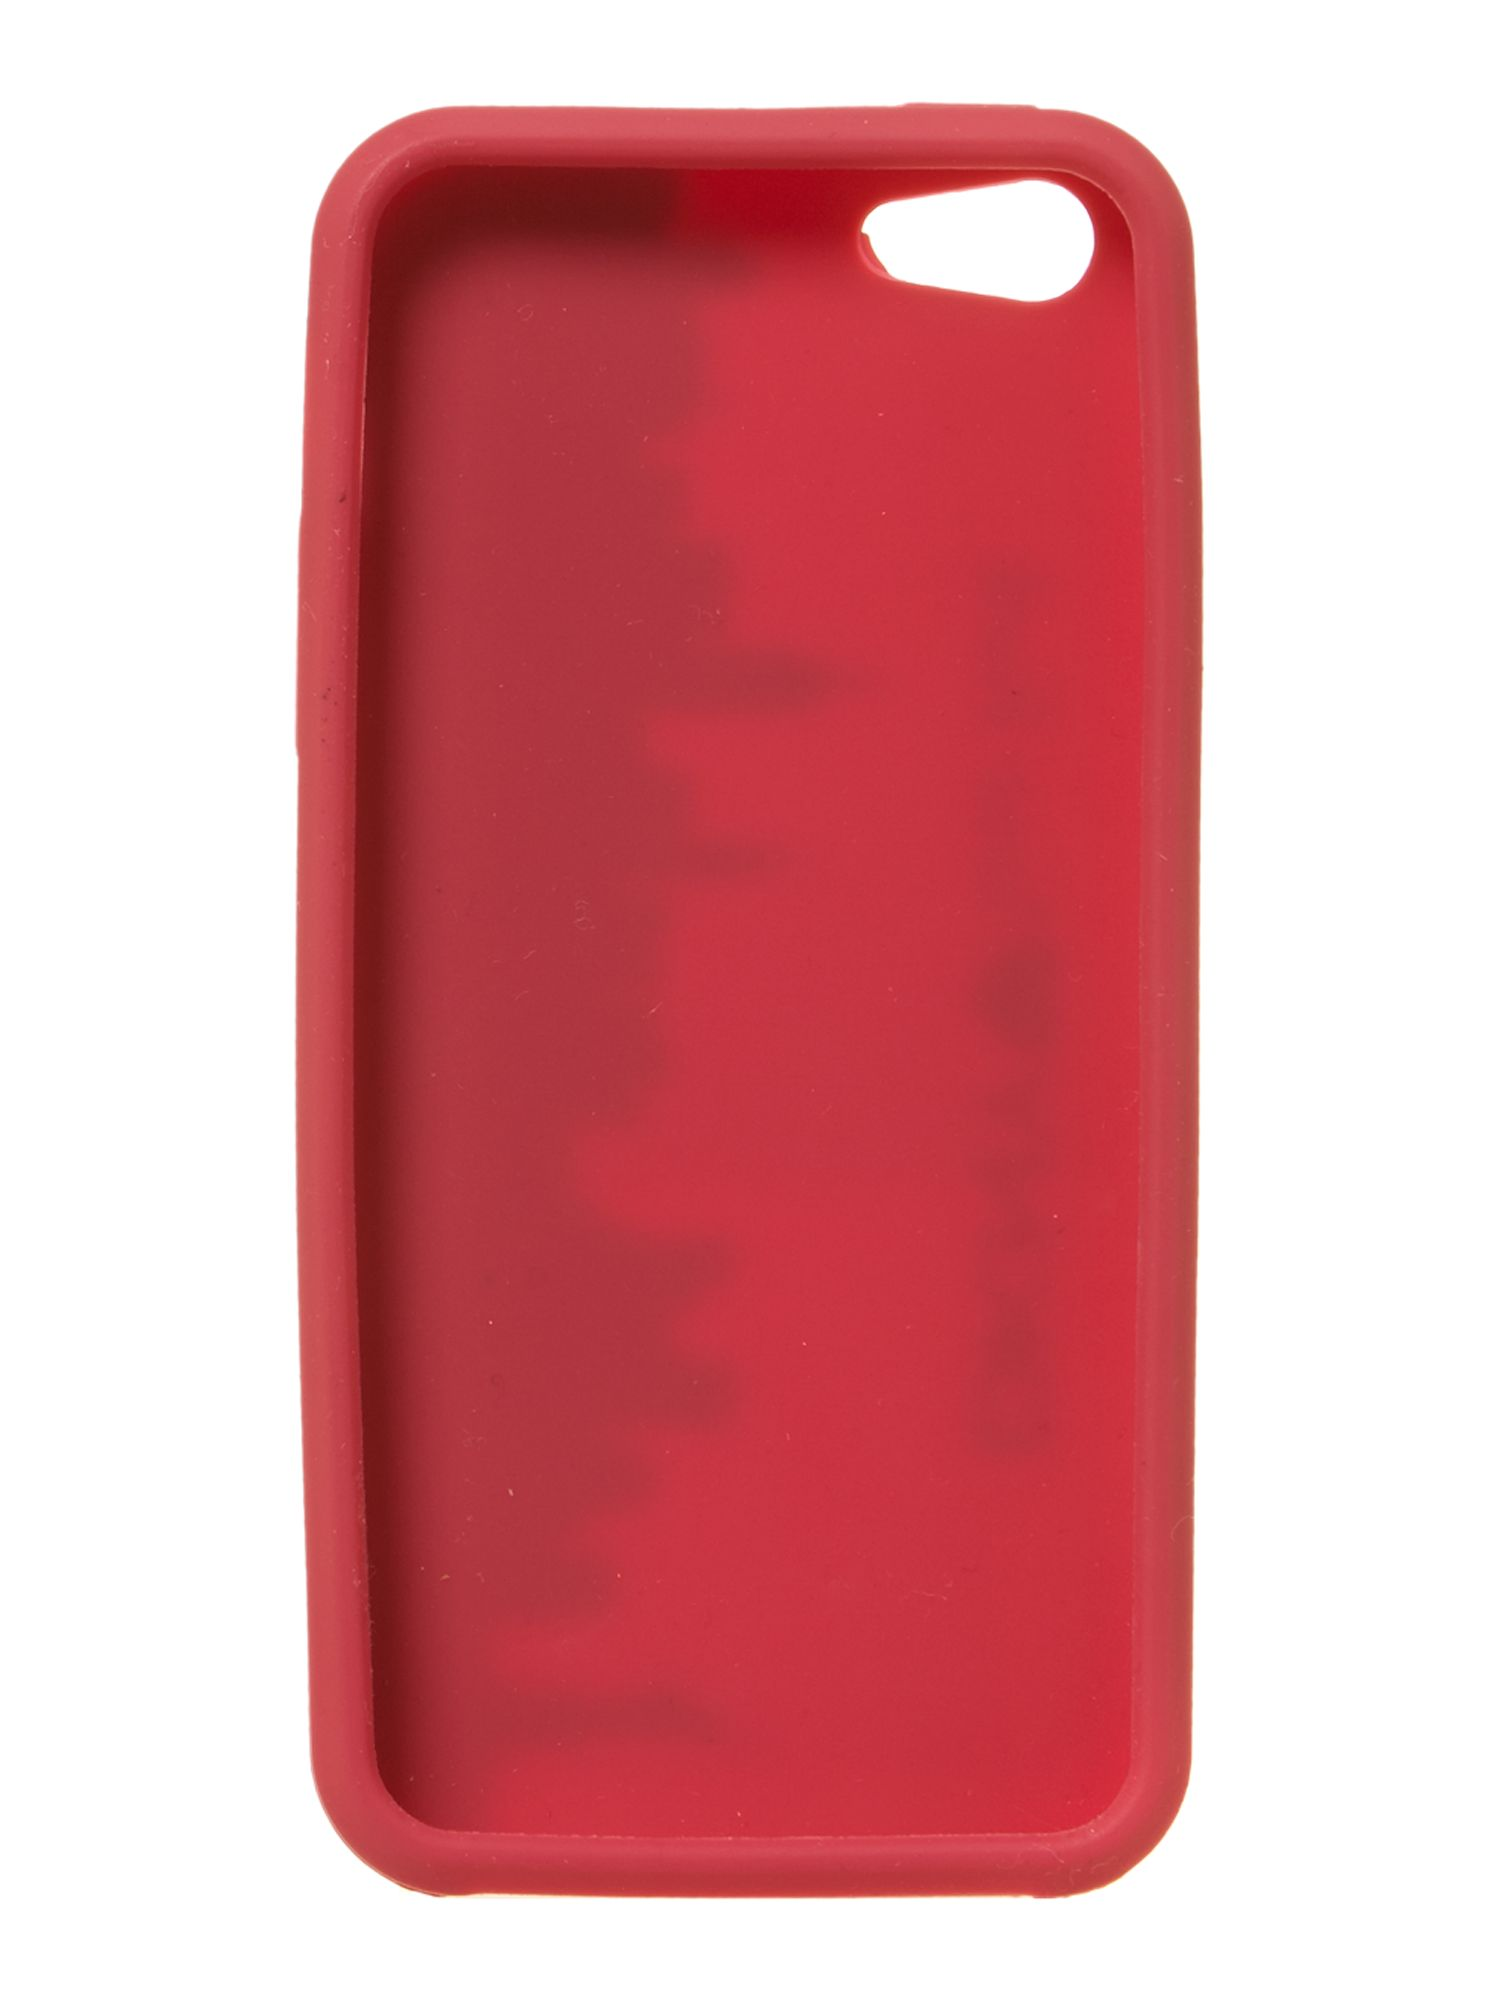 Pink iPhone 5 phone case